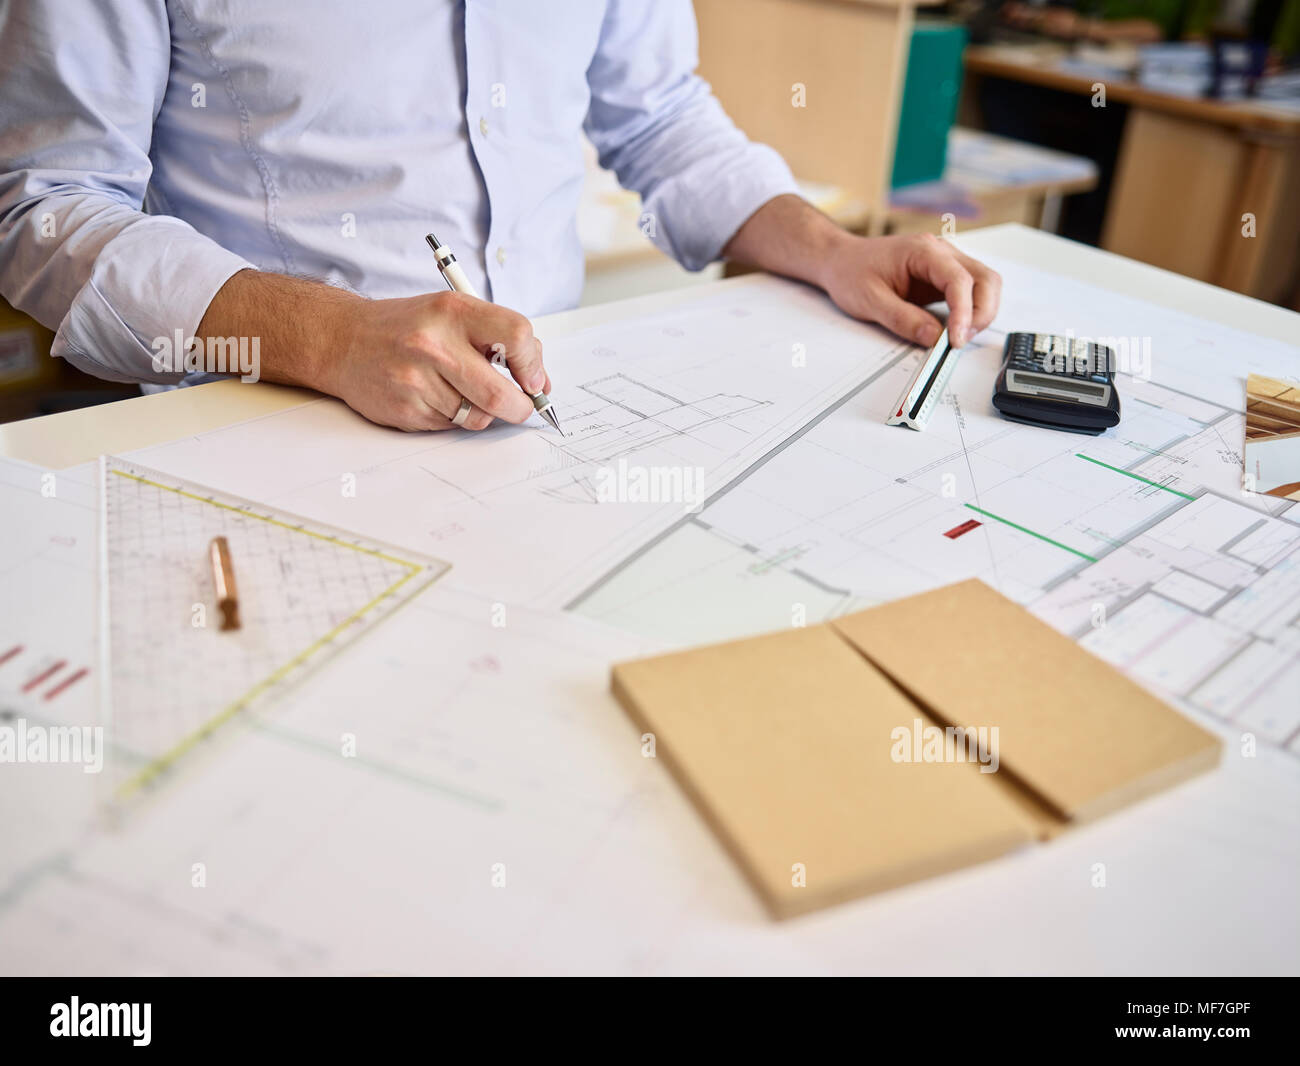 Architect working on construction drawing - Stock Image